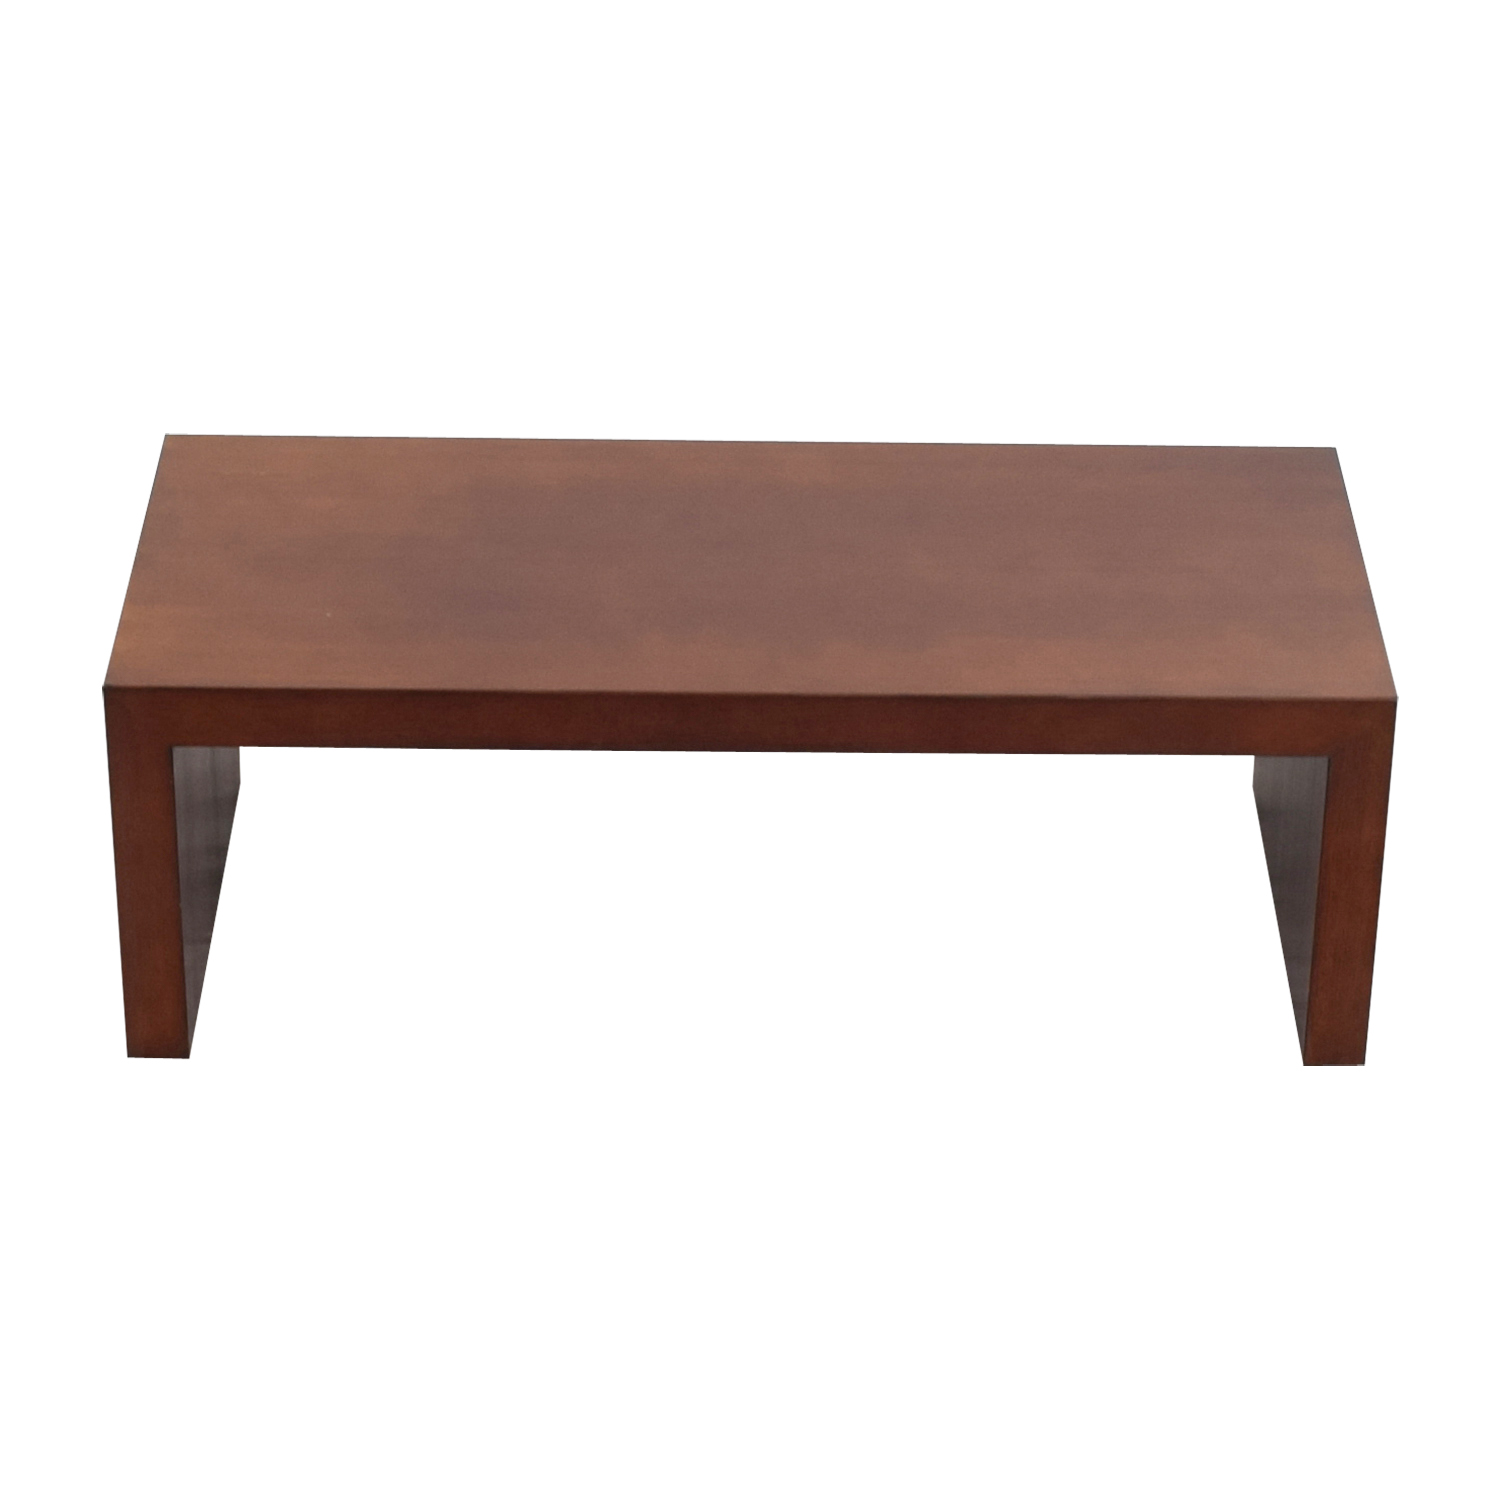 Ethan Allen Ethan Allen Wood Coffee Table second hand